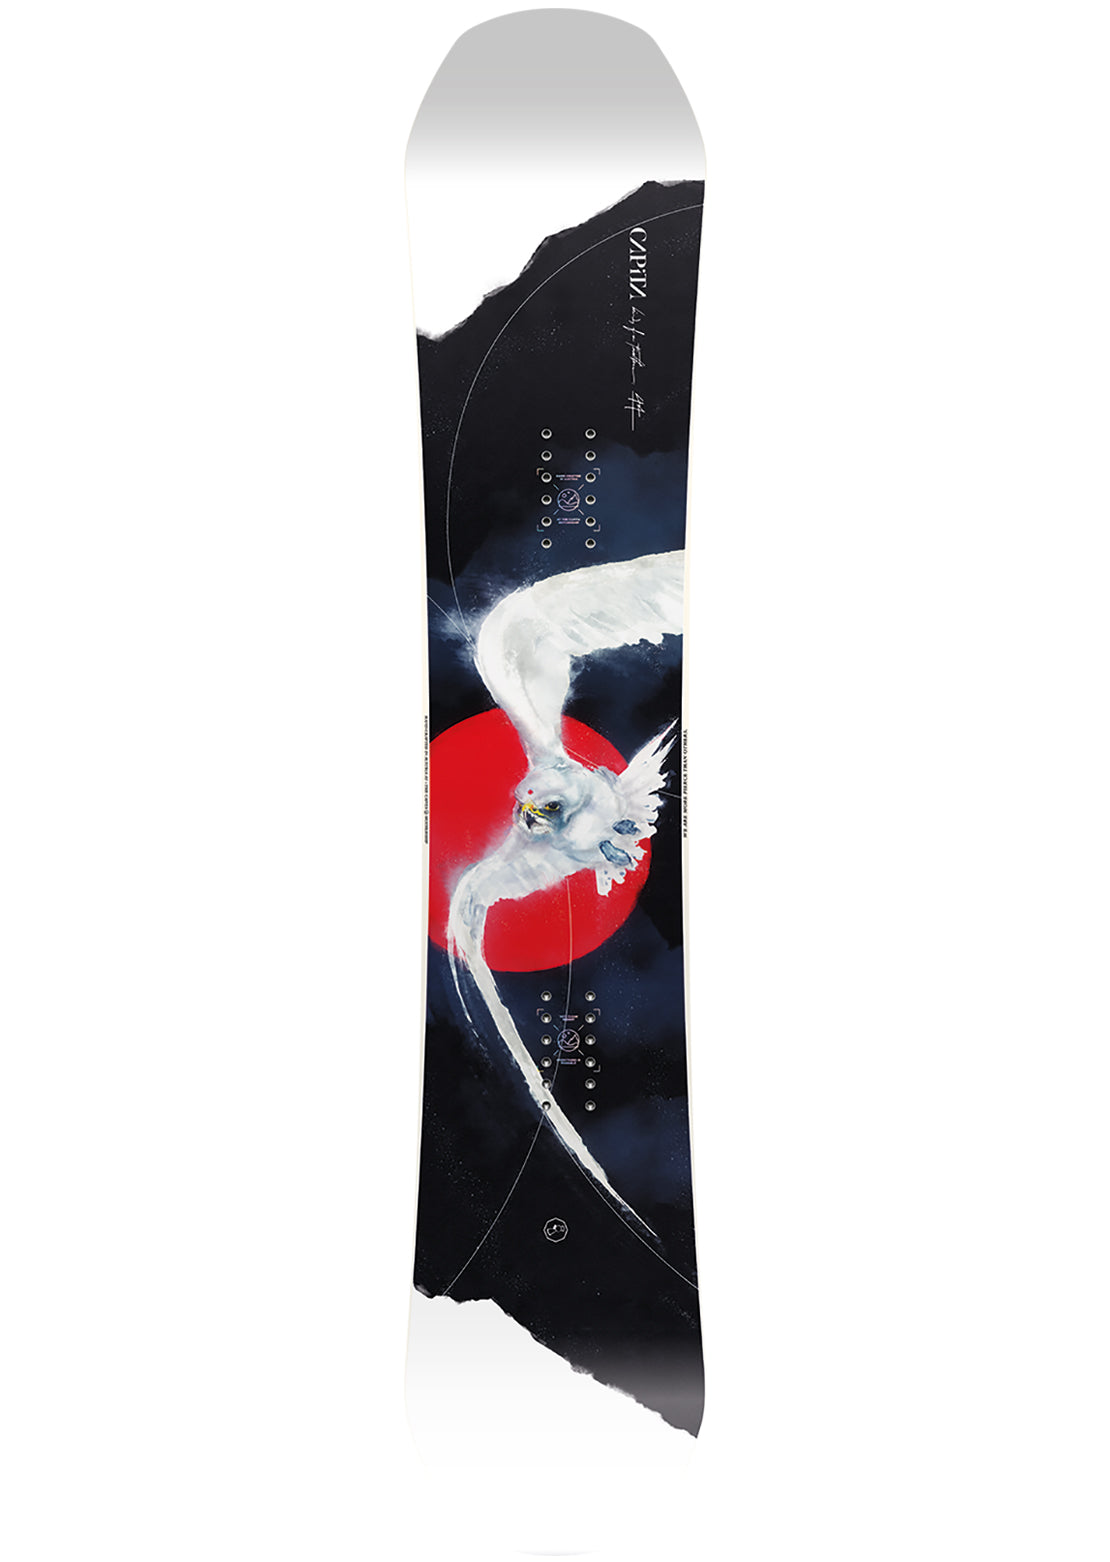 Capita Women's Birds Of Feathers Snowboard - 144 cm Multi